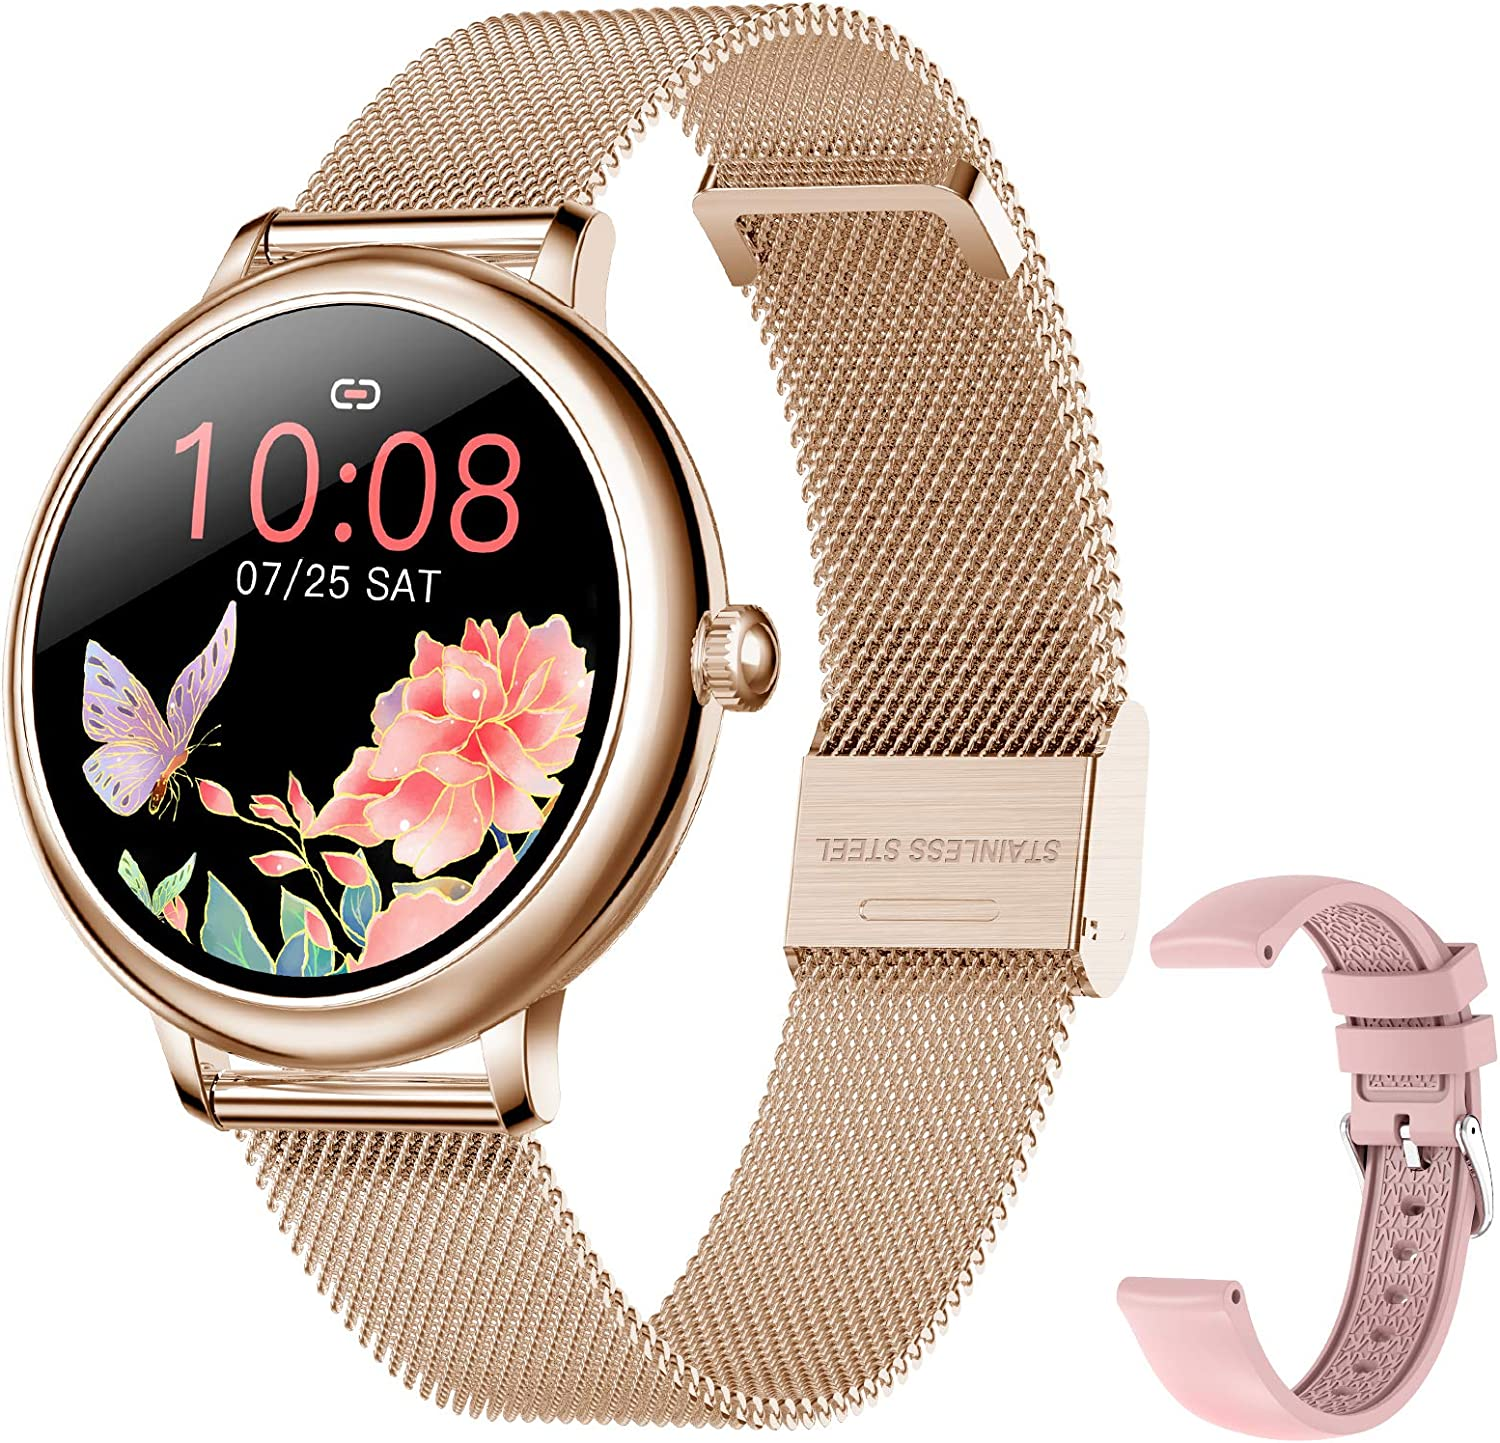 SKMEI Smart Watch for Women, Smart Watch for Android iPhones with Female Function, Waterproof Fitness Activity Tracker with Heart Rate Blood Pressure Monitor Call Reminder